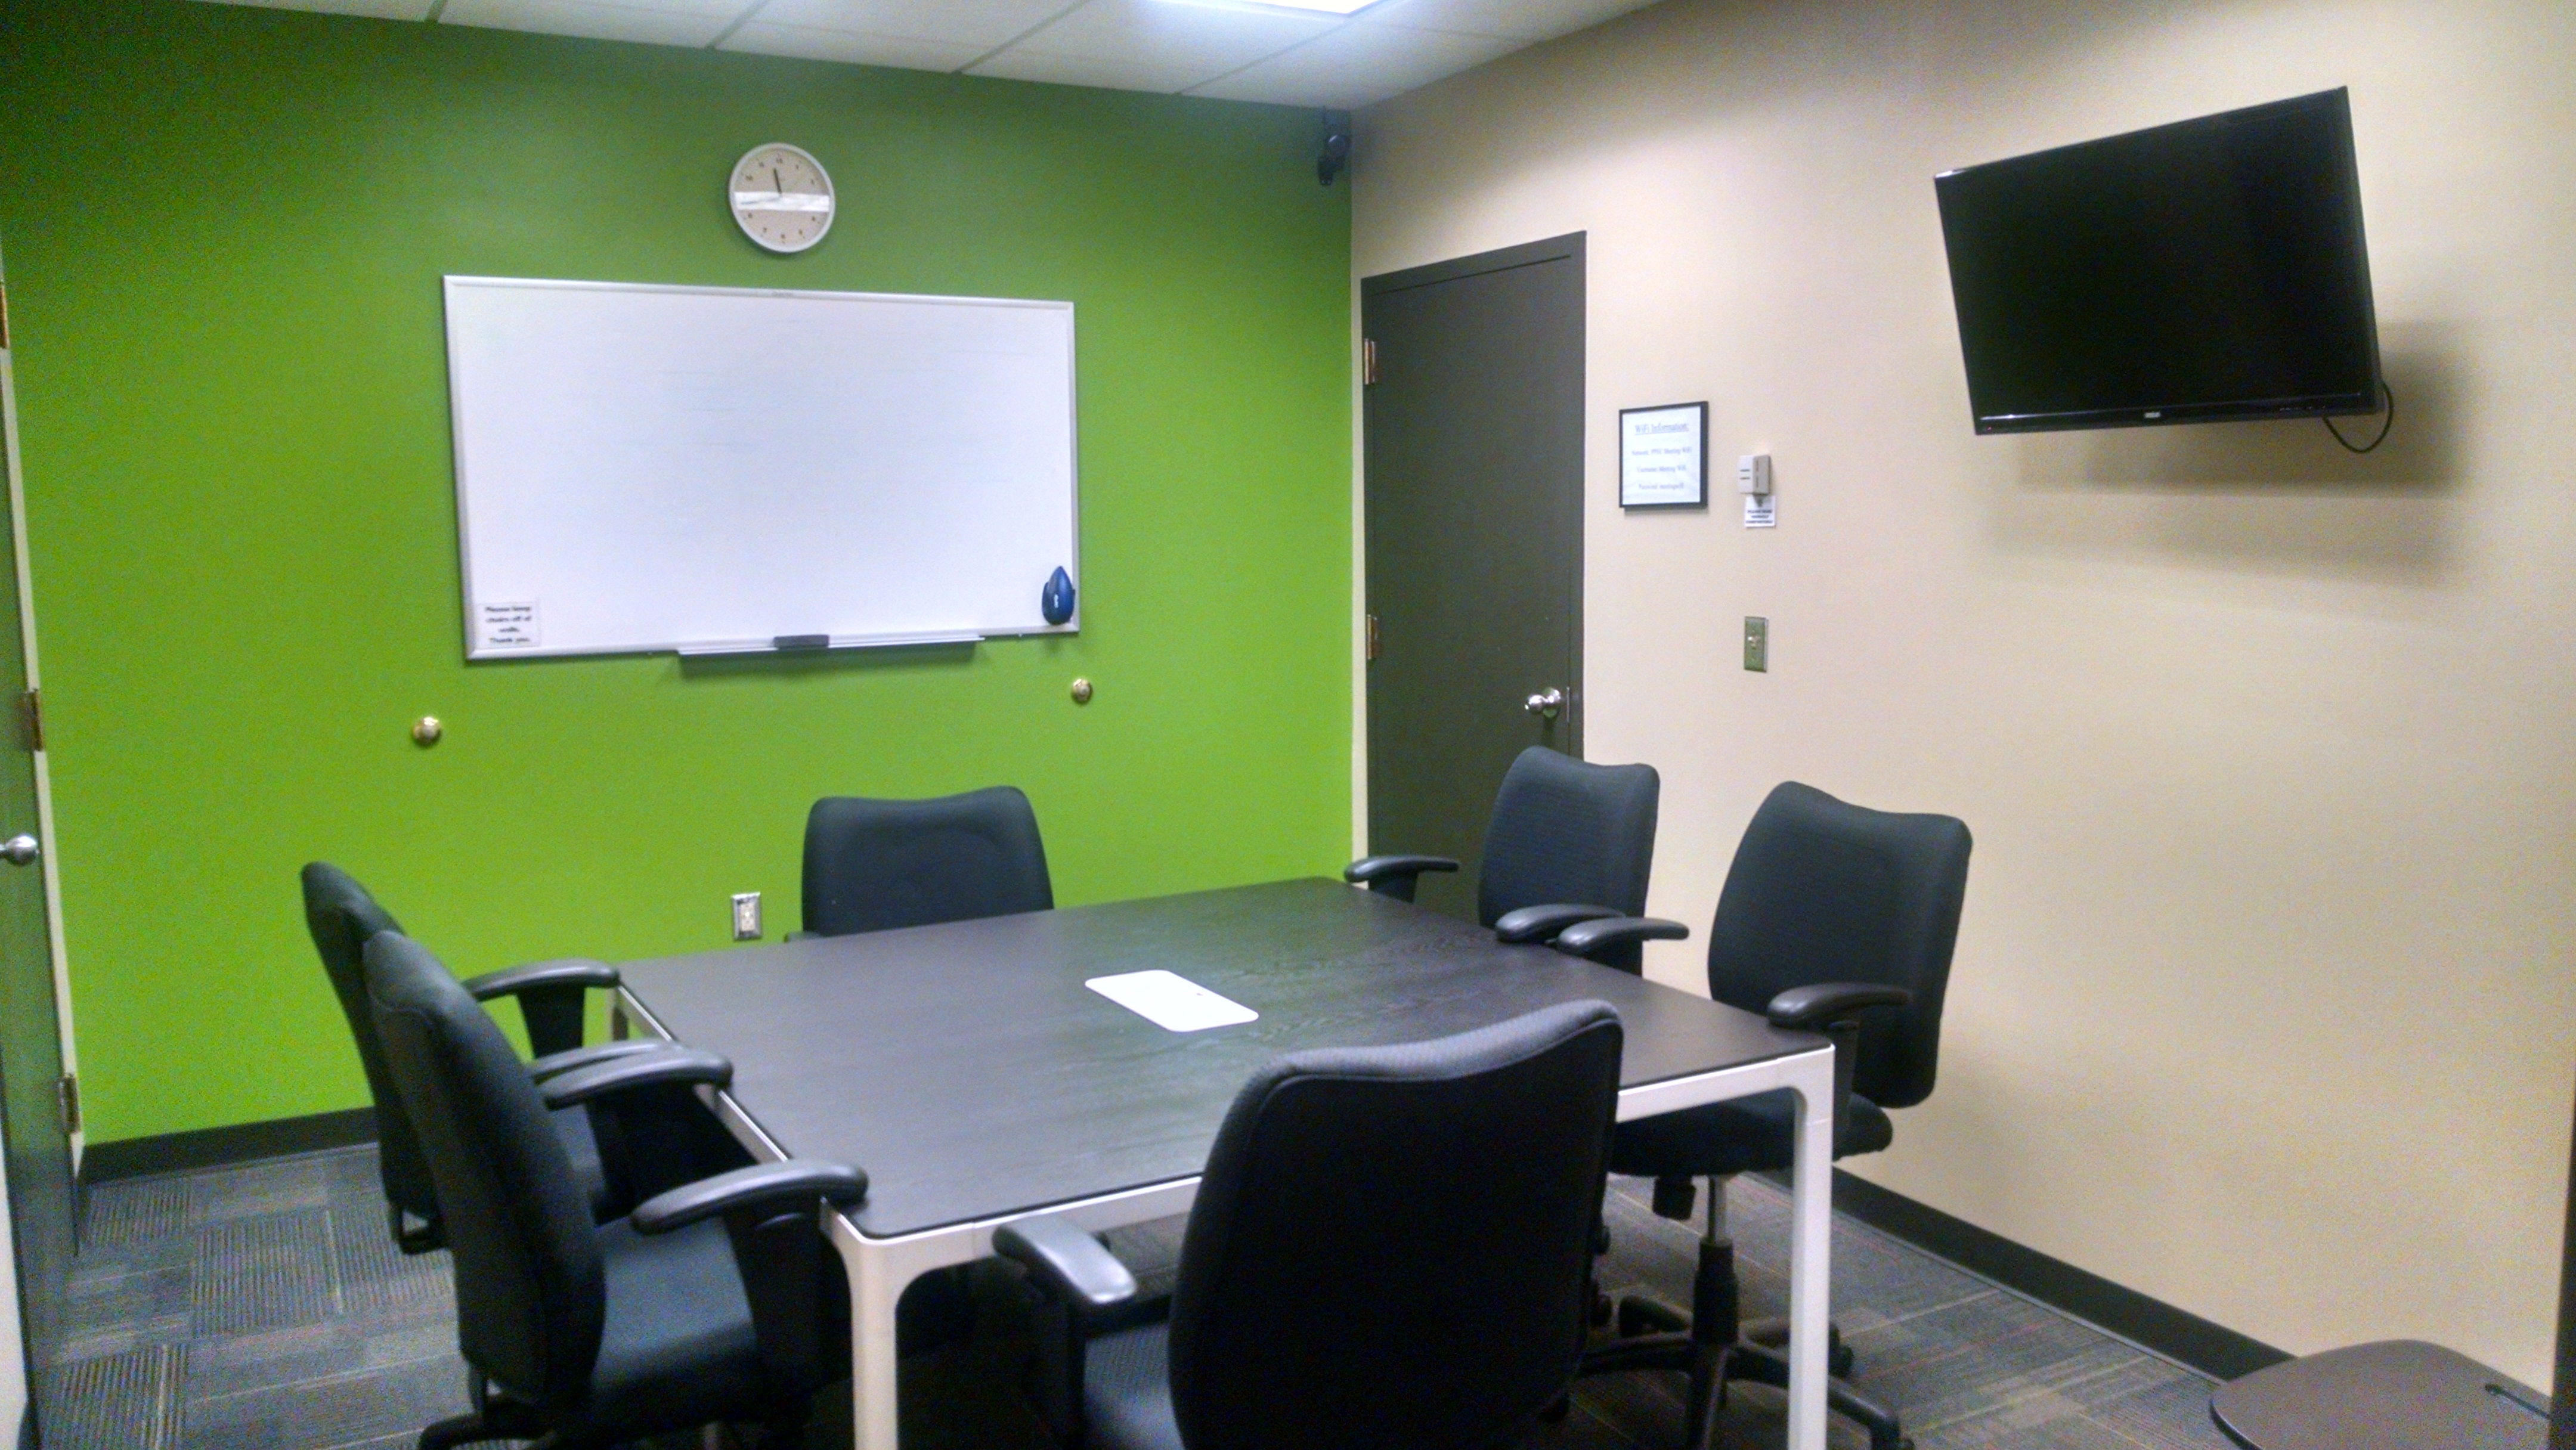 Nashville Office Meeting Space Conference Room For Rent